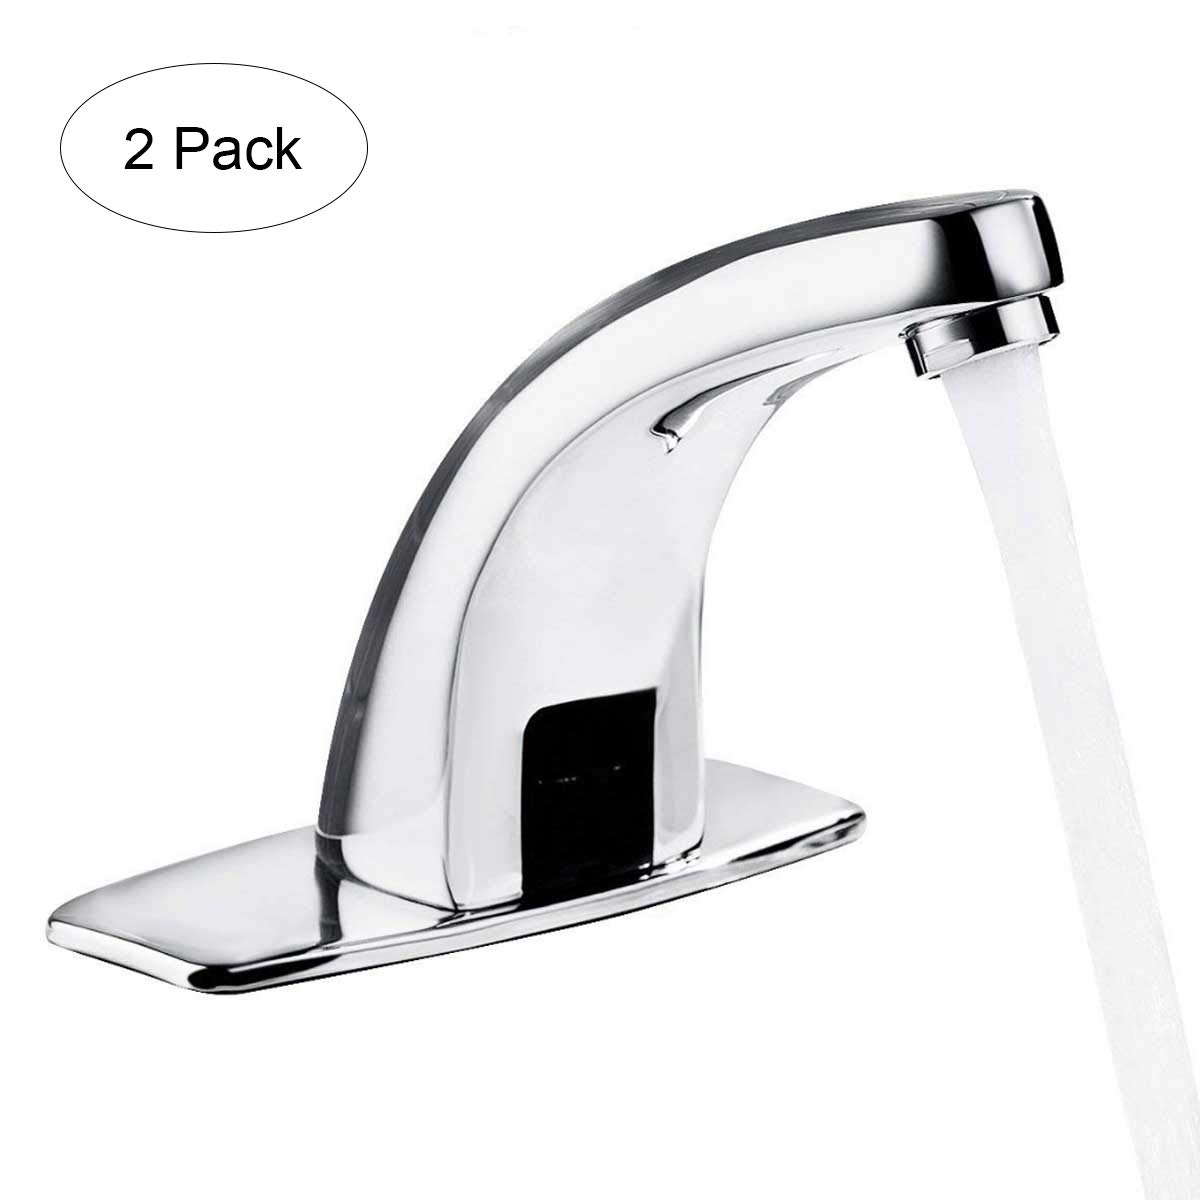 Yosoo Automatic Infrared Sensor Faucet, Zinc Alloy Smart Touchless Sink Faucet Kitchen Bathroom Water Tap (Pack Of 2) by Yosoo